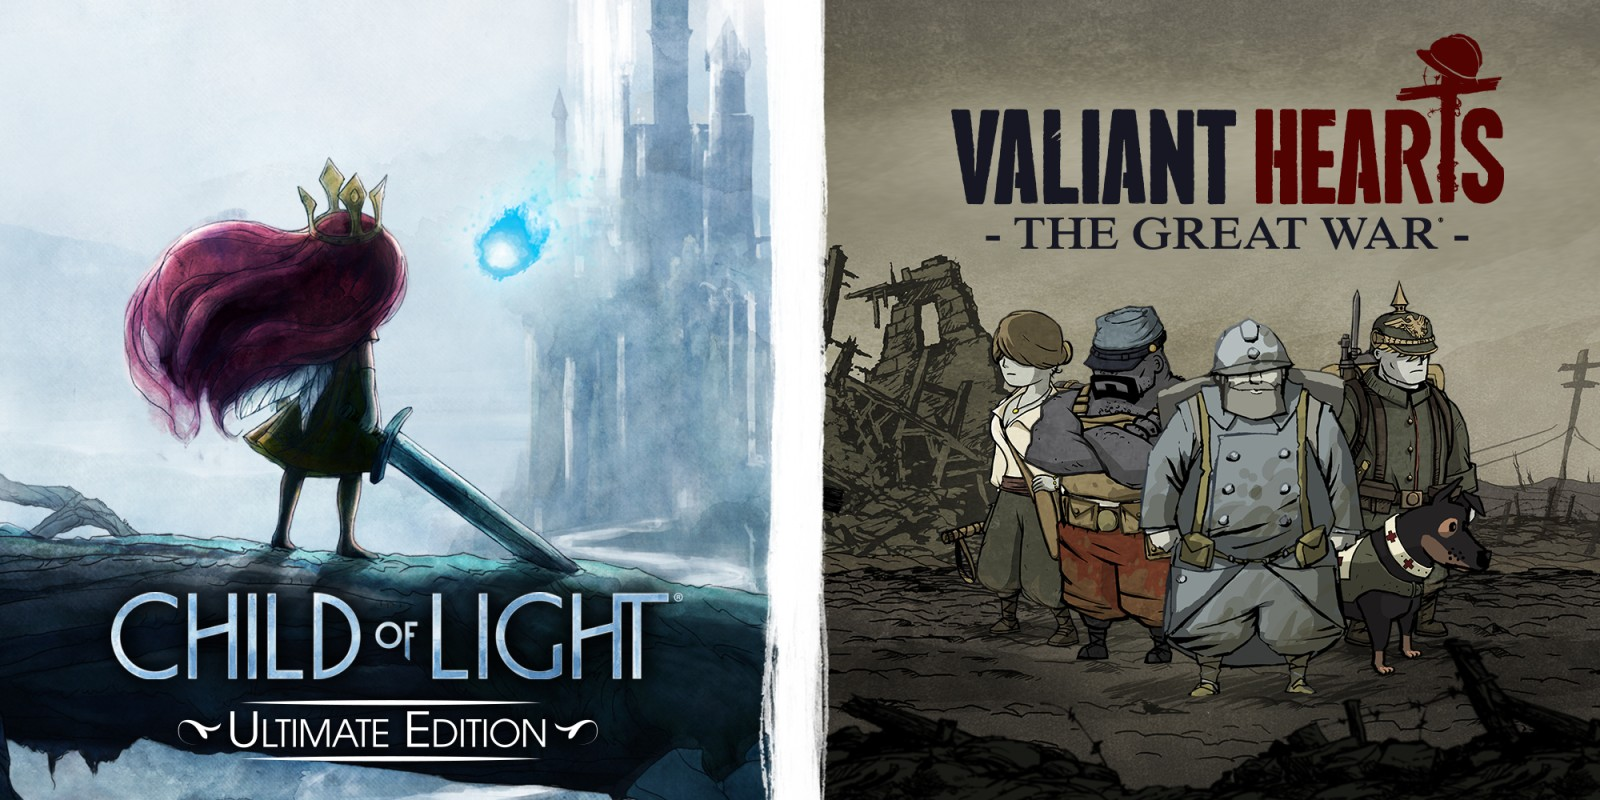 Child of Light Ultimate Edition & Valiant Hearts: The Great War Bundle